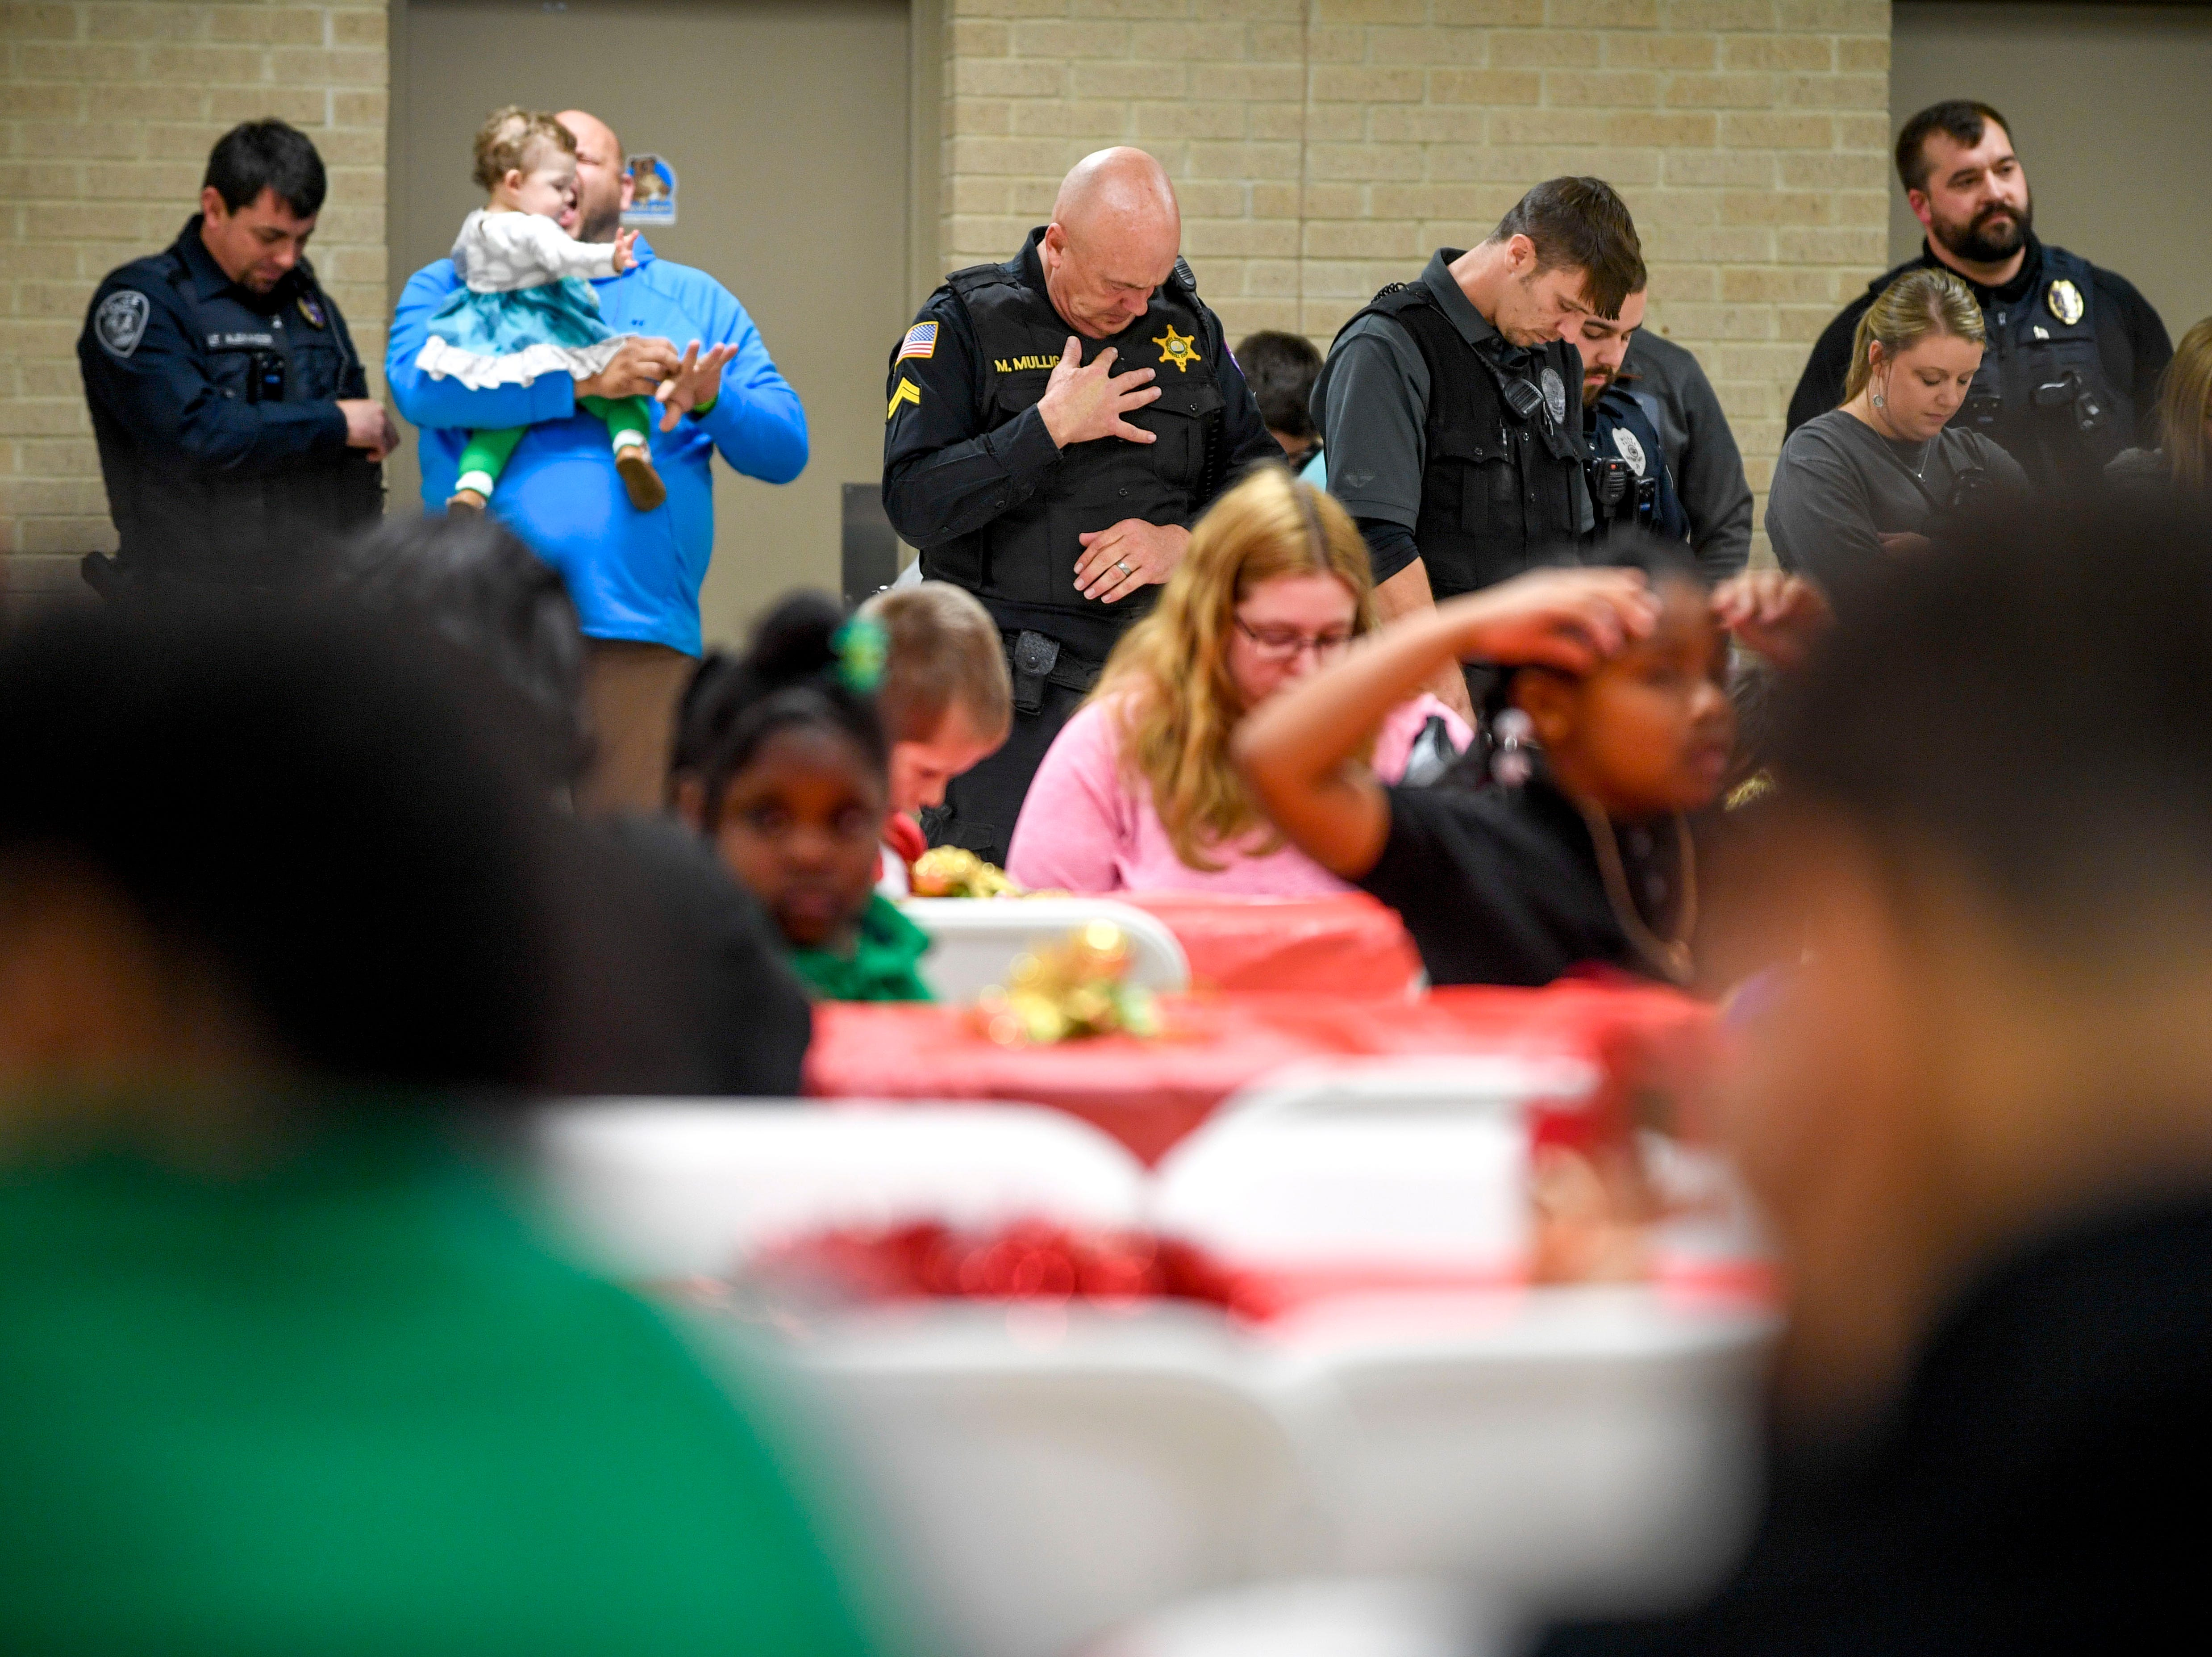 Law enforcement officers bow their heads for a prayer during the matching time for Shop with a Cop at Hawkins-Whitby Fema Community Safe Room in Milan, Tenn., on Thursday, Dec. 13, 2018.